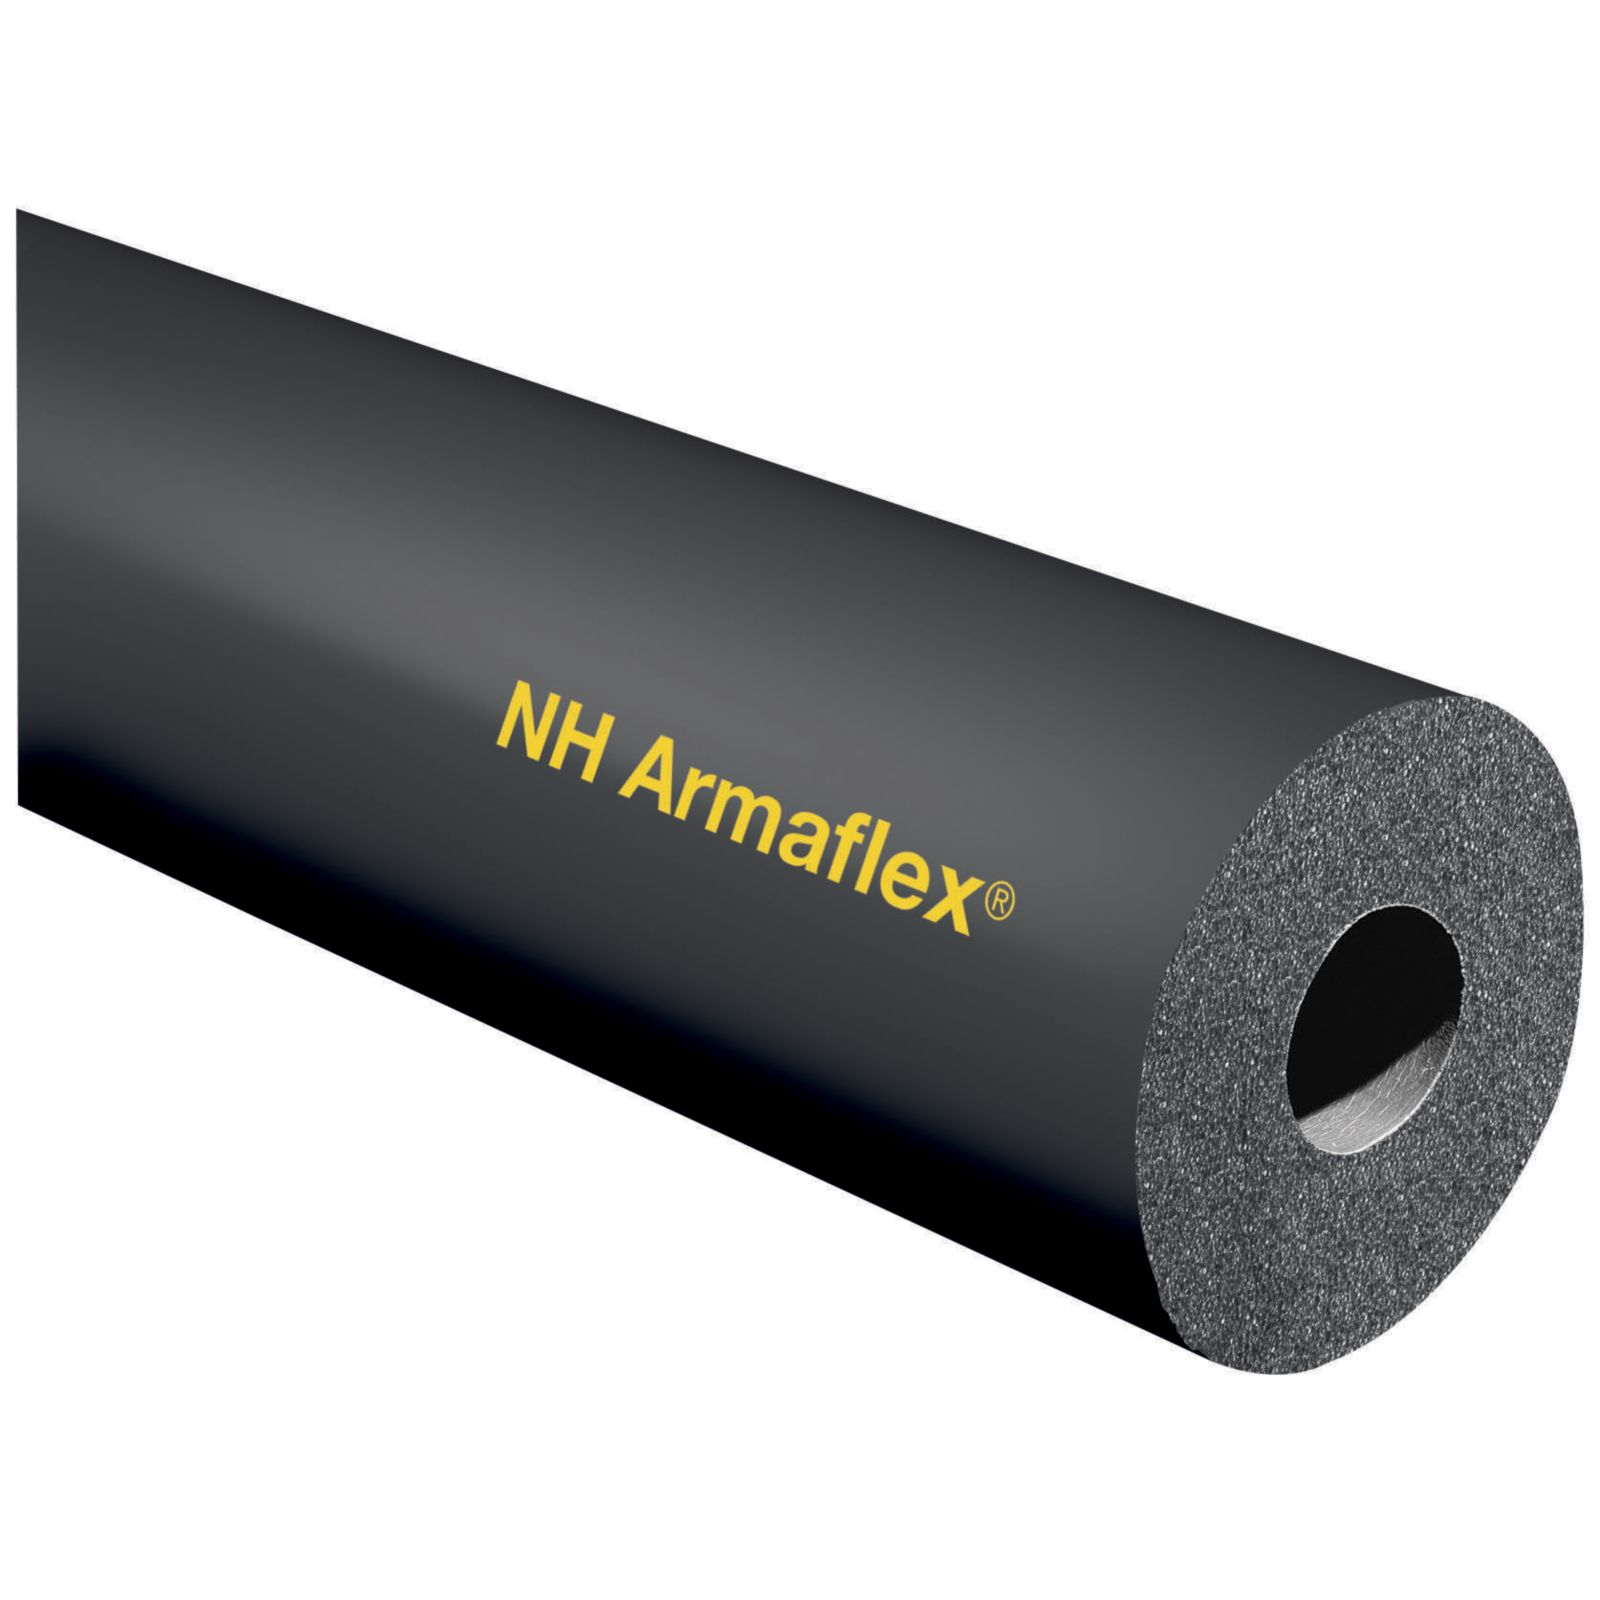 "Armacell DGS01212 - Tubolita® Self Seal Pipe Insulation, 1/2"" I.D. X 1/2"" Wall Thickness (Nominal) X 6 Foot Length"